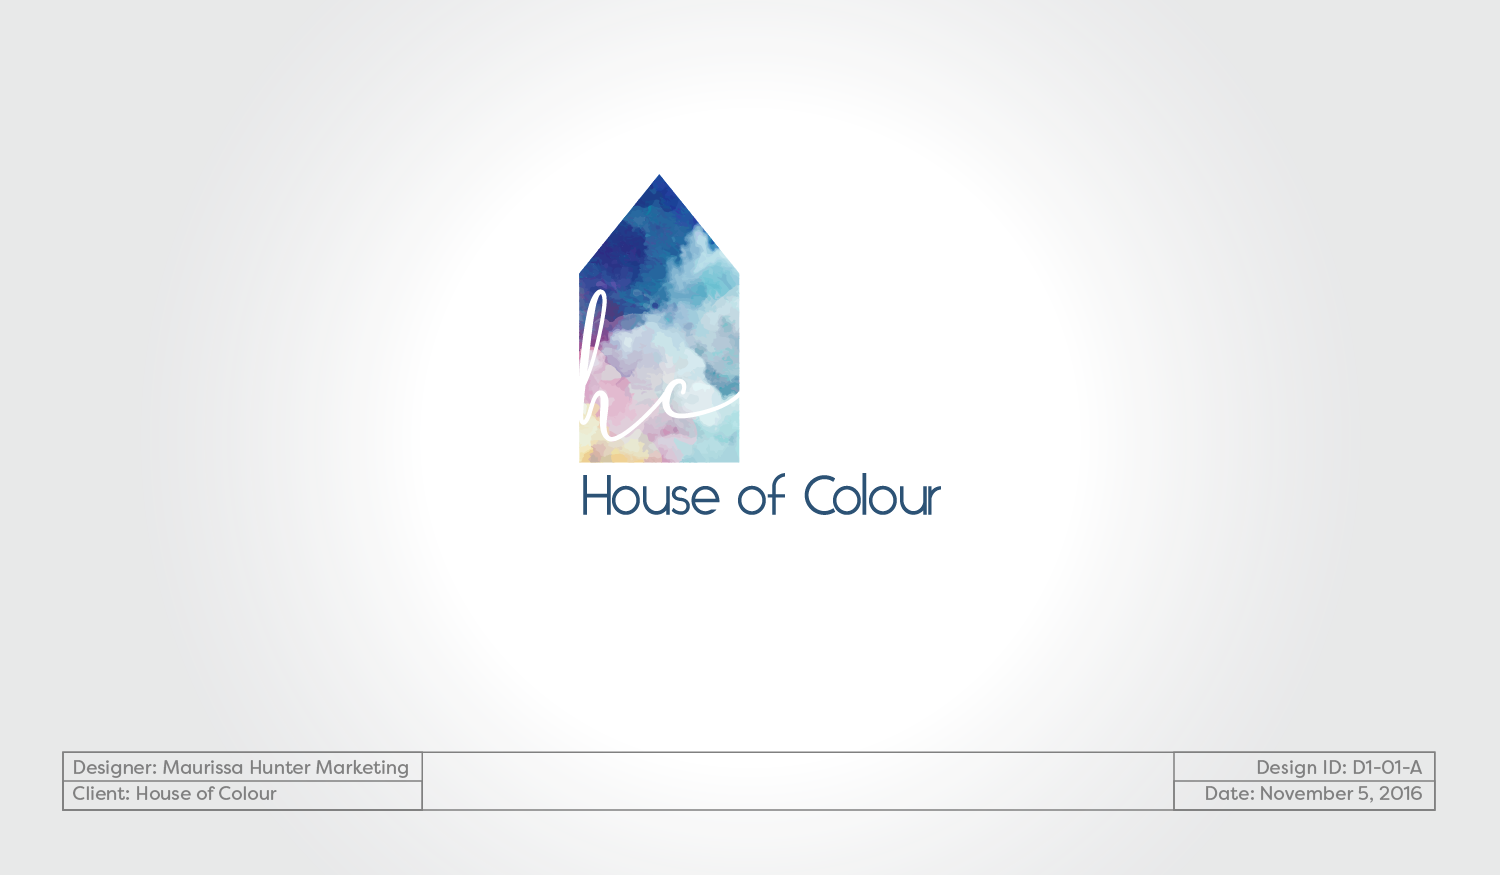 Serious, Conservative, Painting And Decorating Logo Design ... on house exterior, house paint schemes, house crafts, house photoshop, house watercolor, house bed, house people, house painter, house family, house design, house orange, house colors, house painting, house drawing, house artwork, house construction,